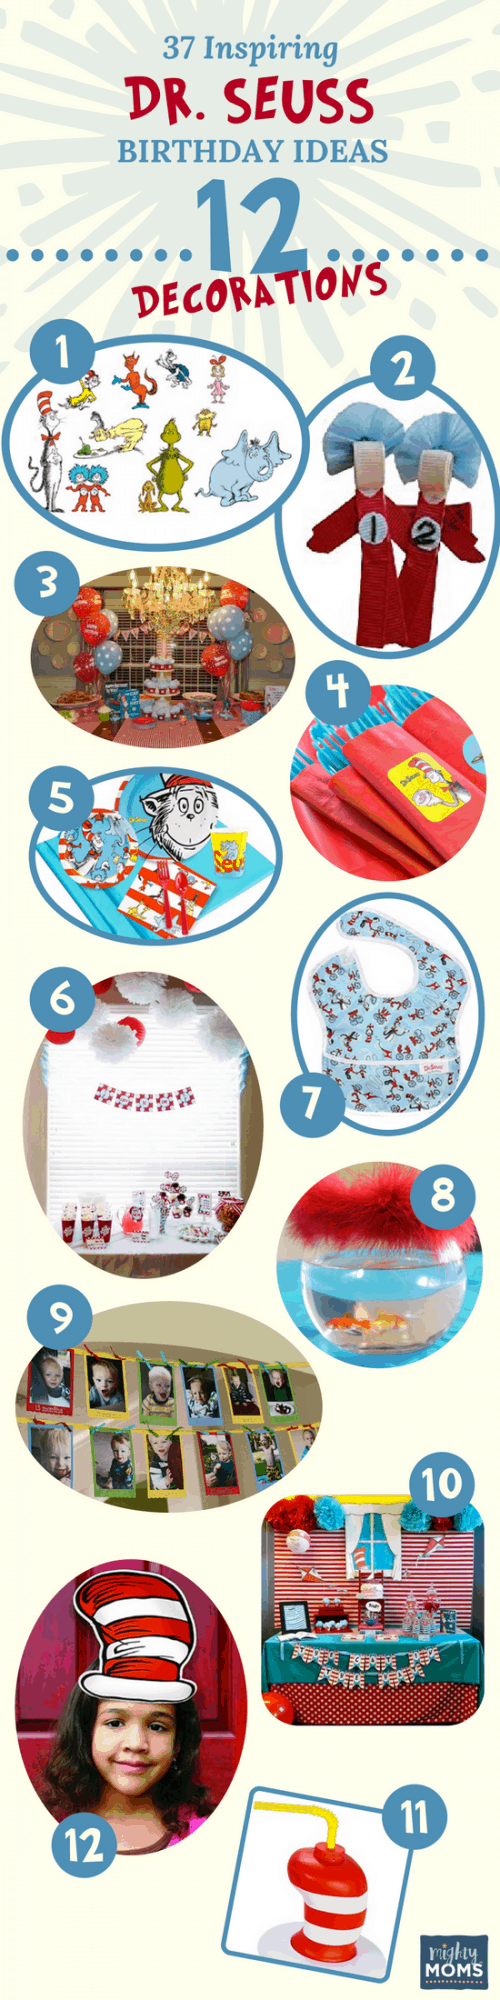 Decorations: 37 Inspiring Dr. Seuss Birthday Ideas for the Most Fantastic Party in Whoville - Mightymoms.club